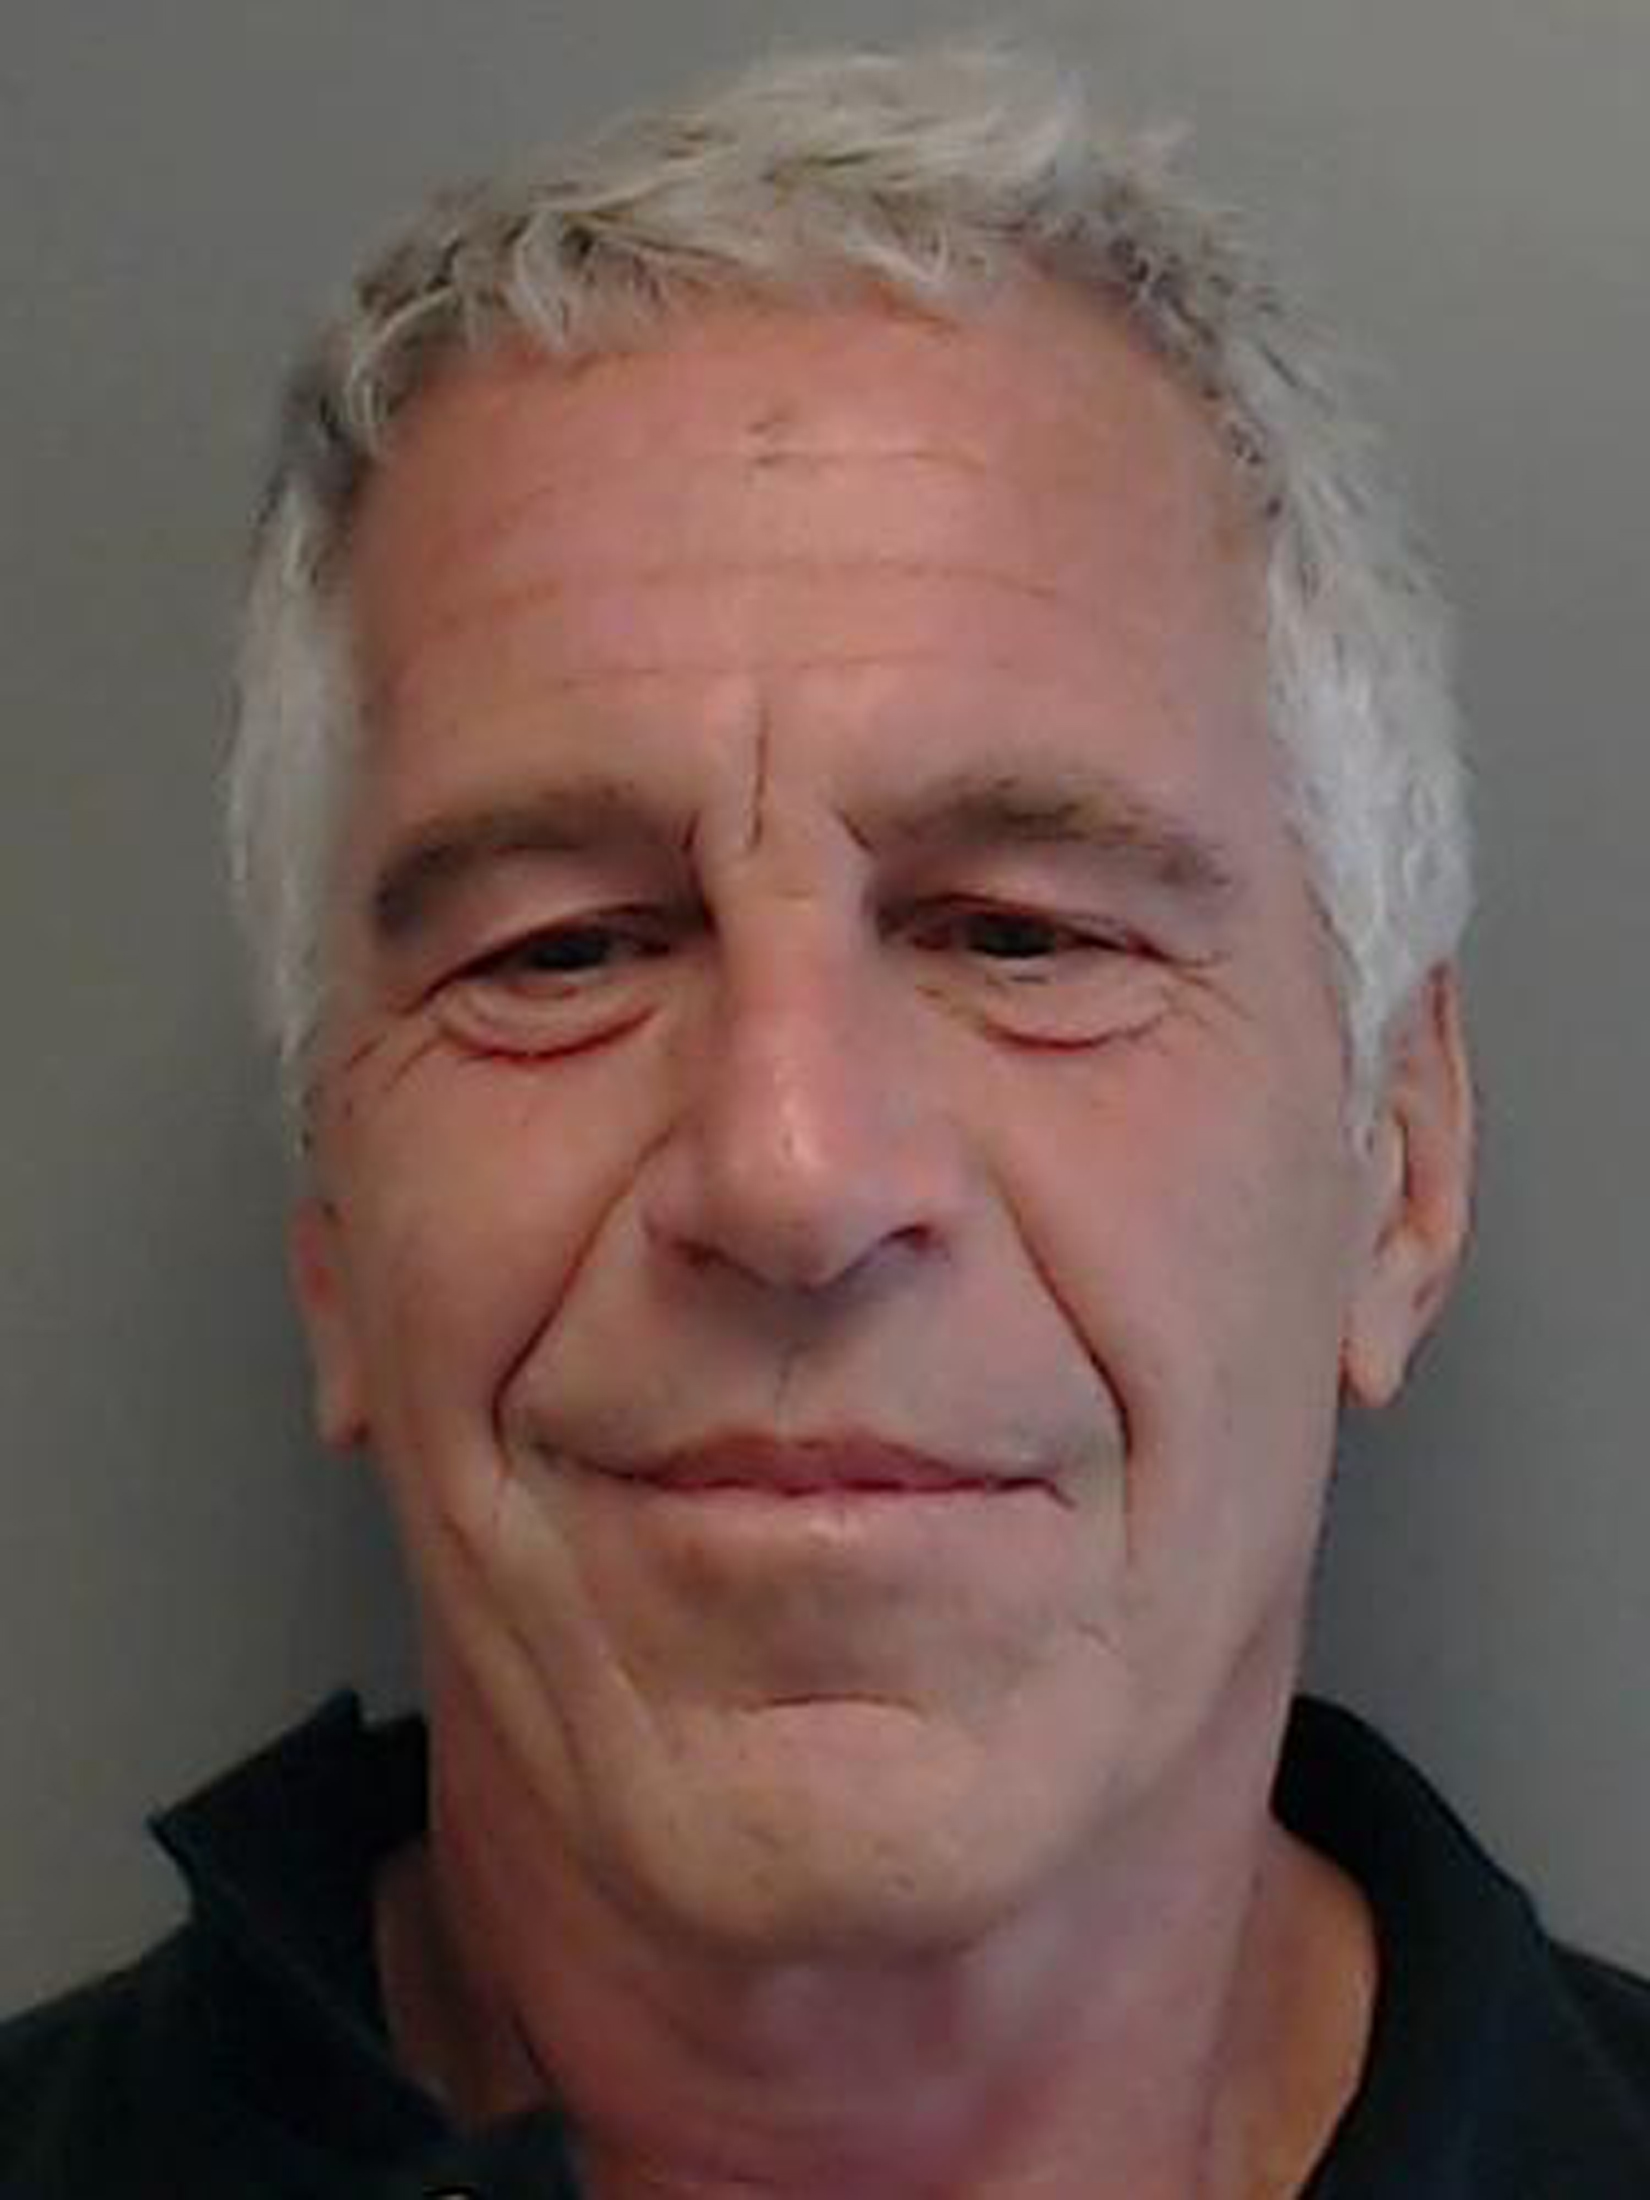 effrey Epstein is shown in this undated Florida Department of Law Enforcement photo. Some charities that have received money from U.S. financier Jeffrey Epstein said they are reviewing their relationships with him or will decline to accept any future gifts from him in the wake of recent allegations he forced an underage girl to have sex with Britain's Prince Andrew and other powerful men. In interviews with Reuters, three recipients of Epstein's money said they would accept no more gifts, at least while the recent allegations are under review. REUTERS/Florida Department of Law Enforcement/Handout via Reuters (UNITED STATES - Tags: CRIME LAW HEADSHOT) FOR EDITORIAL USE ONLY. NOT FOR SALE FOR MARKETING OR ADVERTISING CAMPAIGNS. THIS IMAGE HAS BEEN SUPPLIED BY A THIRD PARTY. IT IS DISTRIBUTED, EXACTLY AS RECEIVED BY REUTERS, AS A SERVICE TO CLIENTS - TM3EB1T111G01